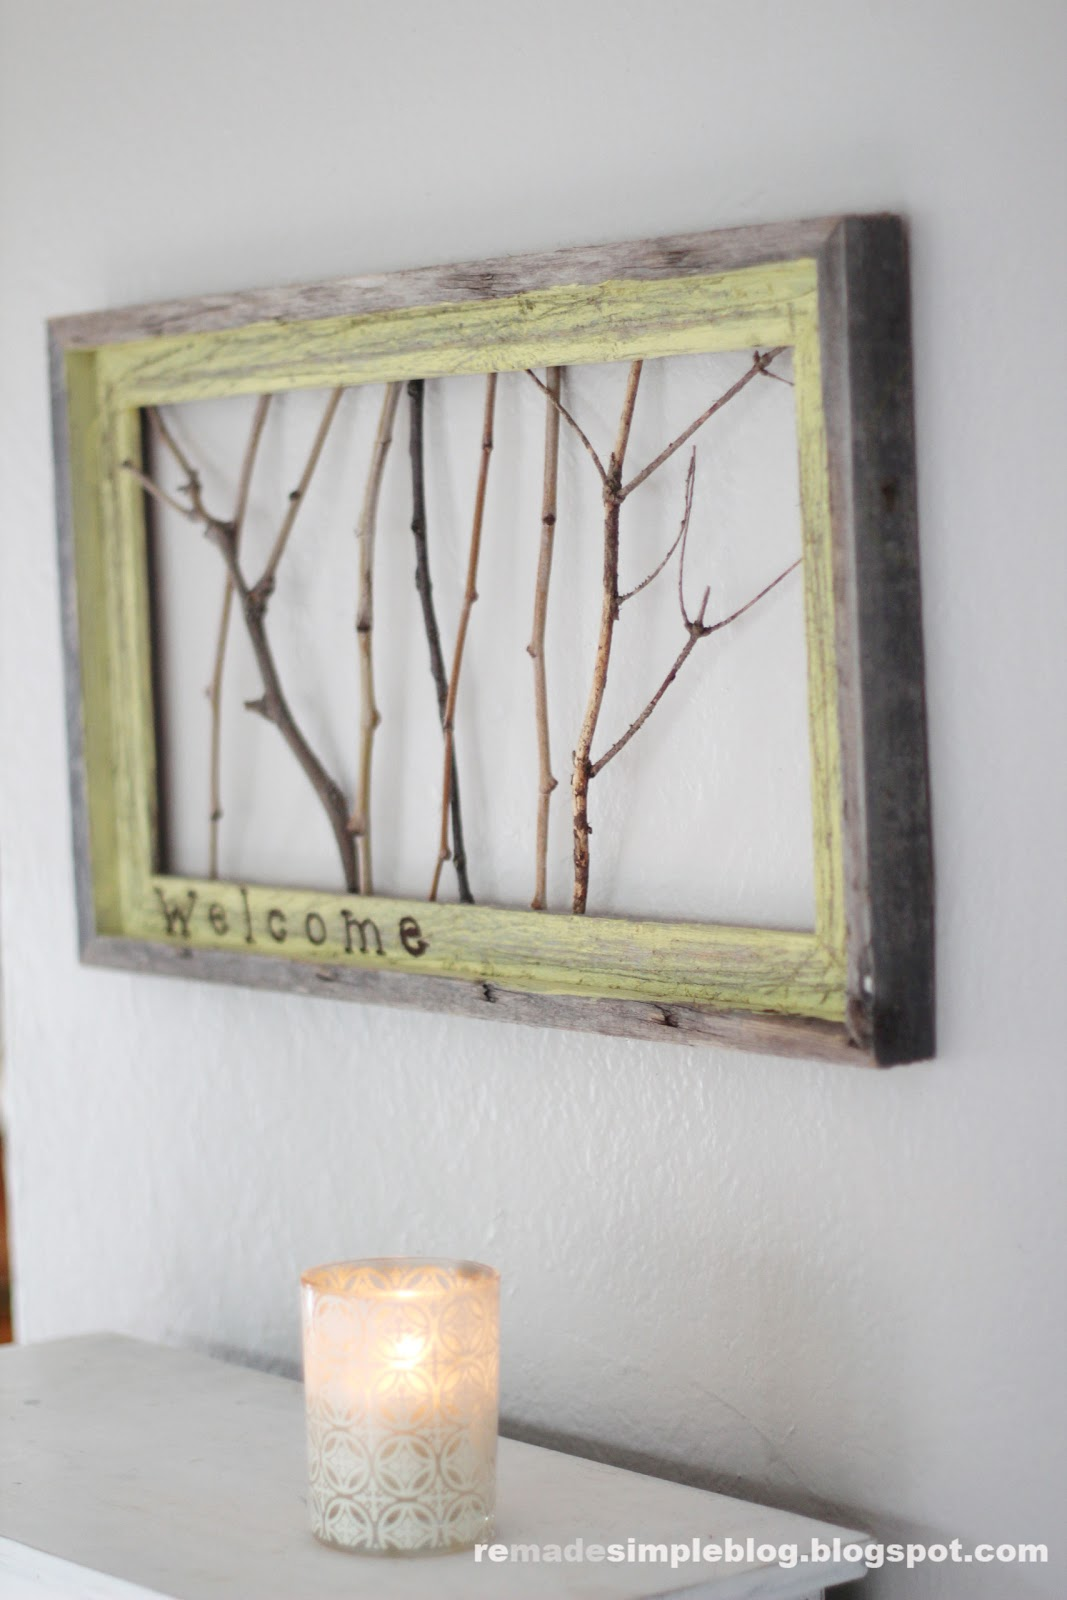 Remadesimple Framed Sticks Welcome Sign